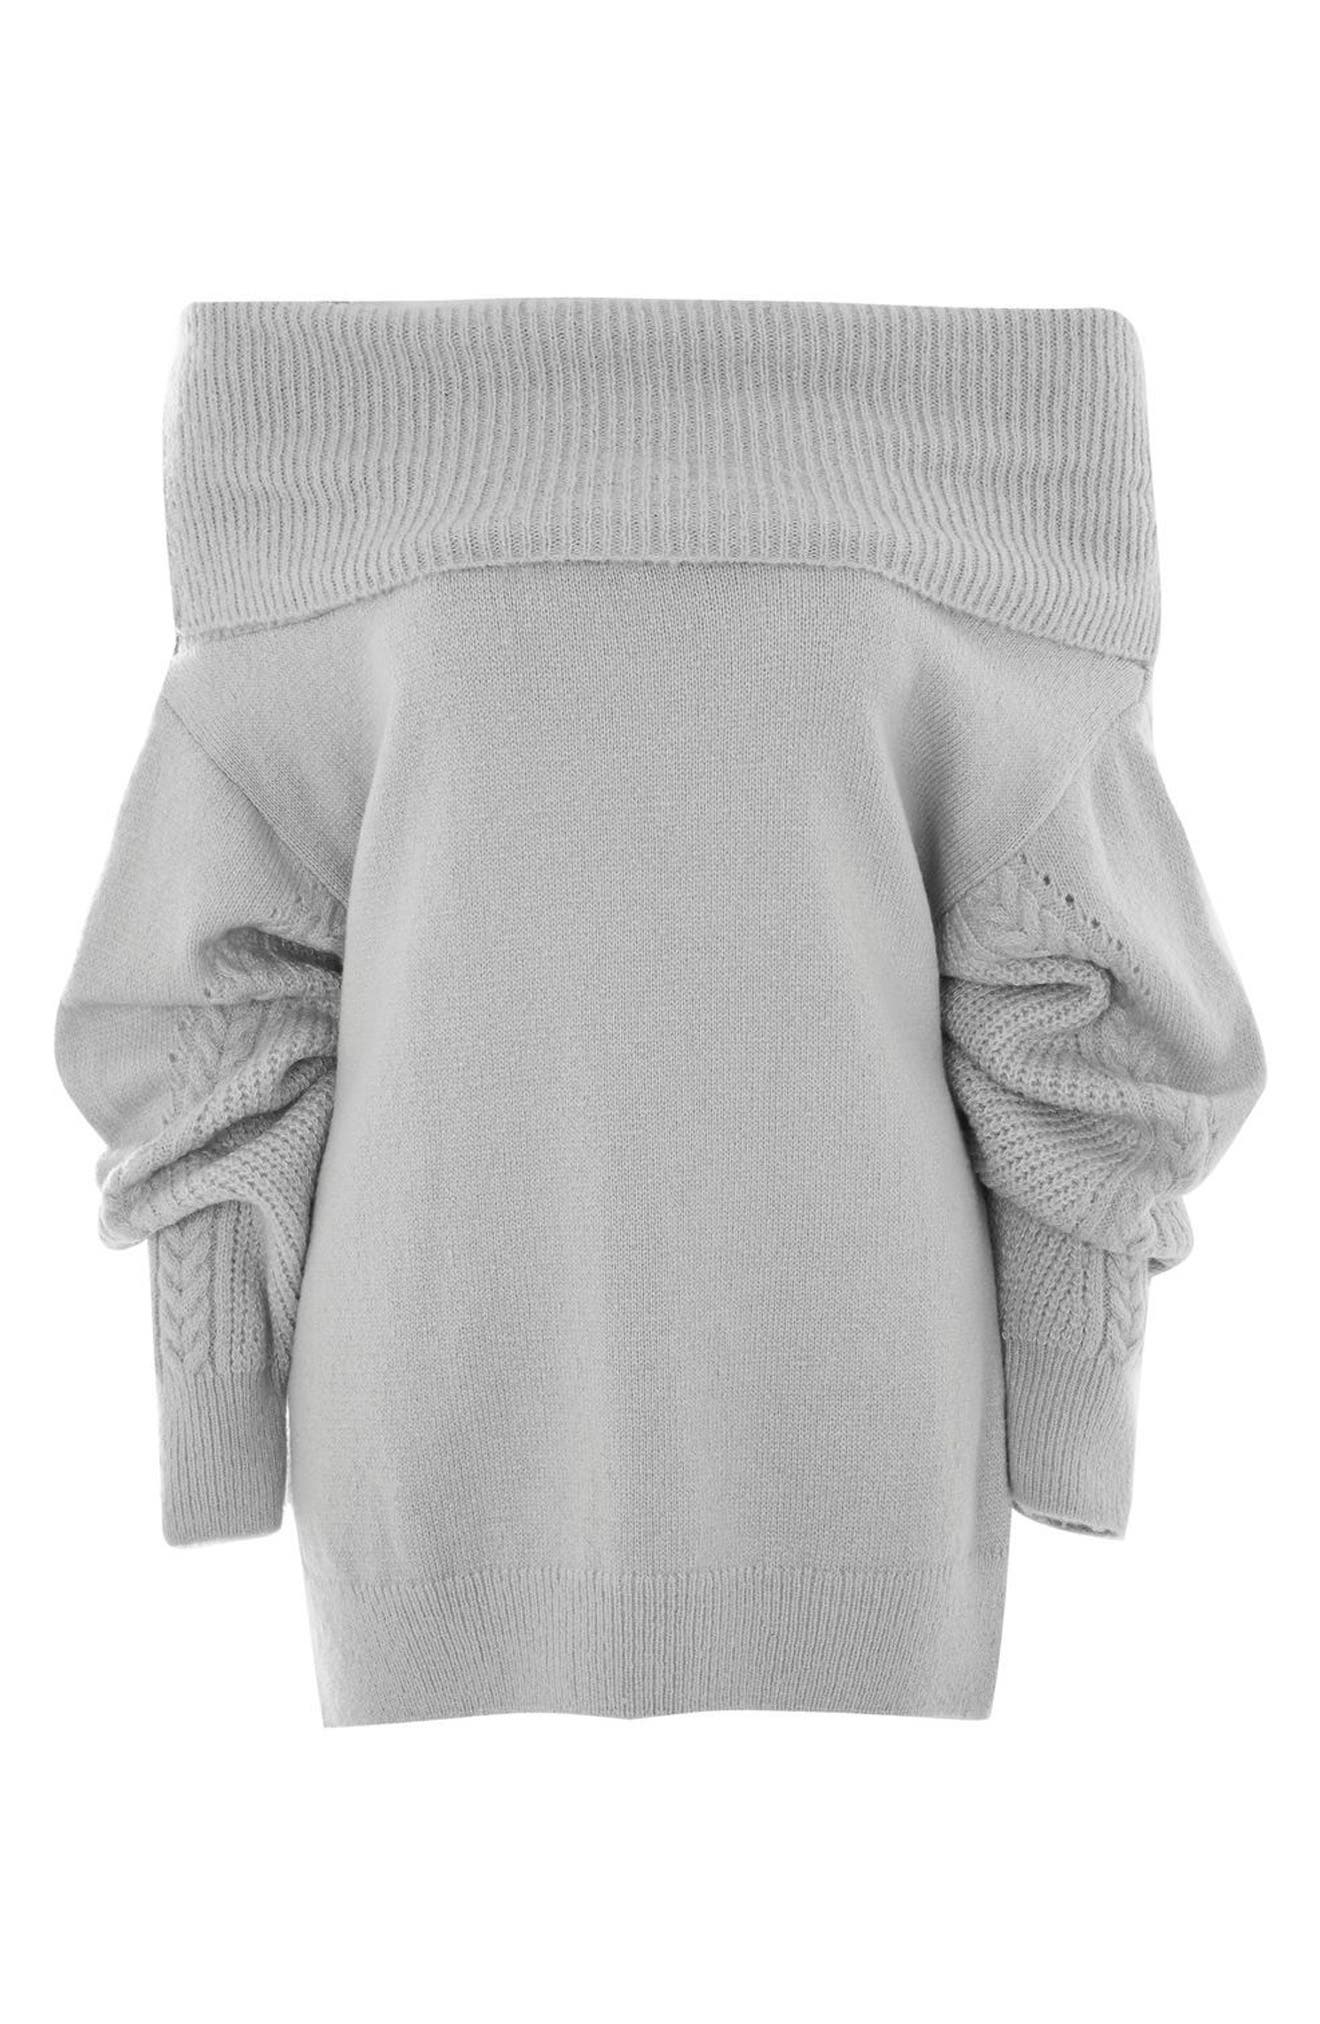 Cable Sleeve Cowl Neck Sweater,                             Alternate thumbnail 4, color,                             050